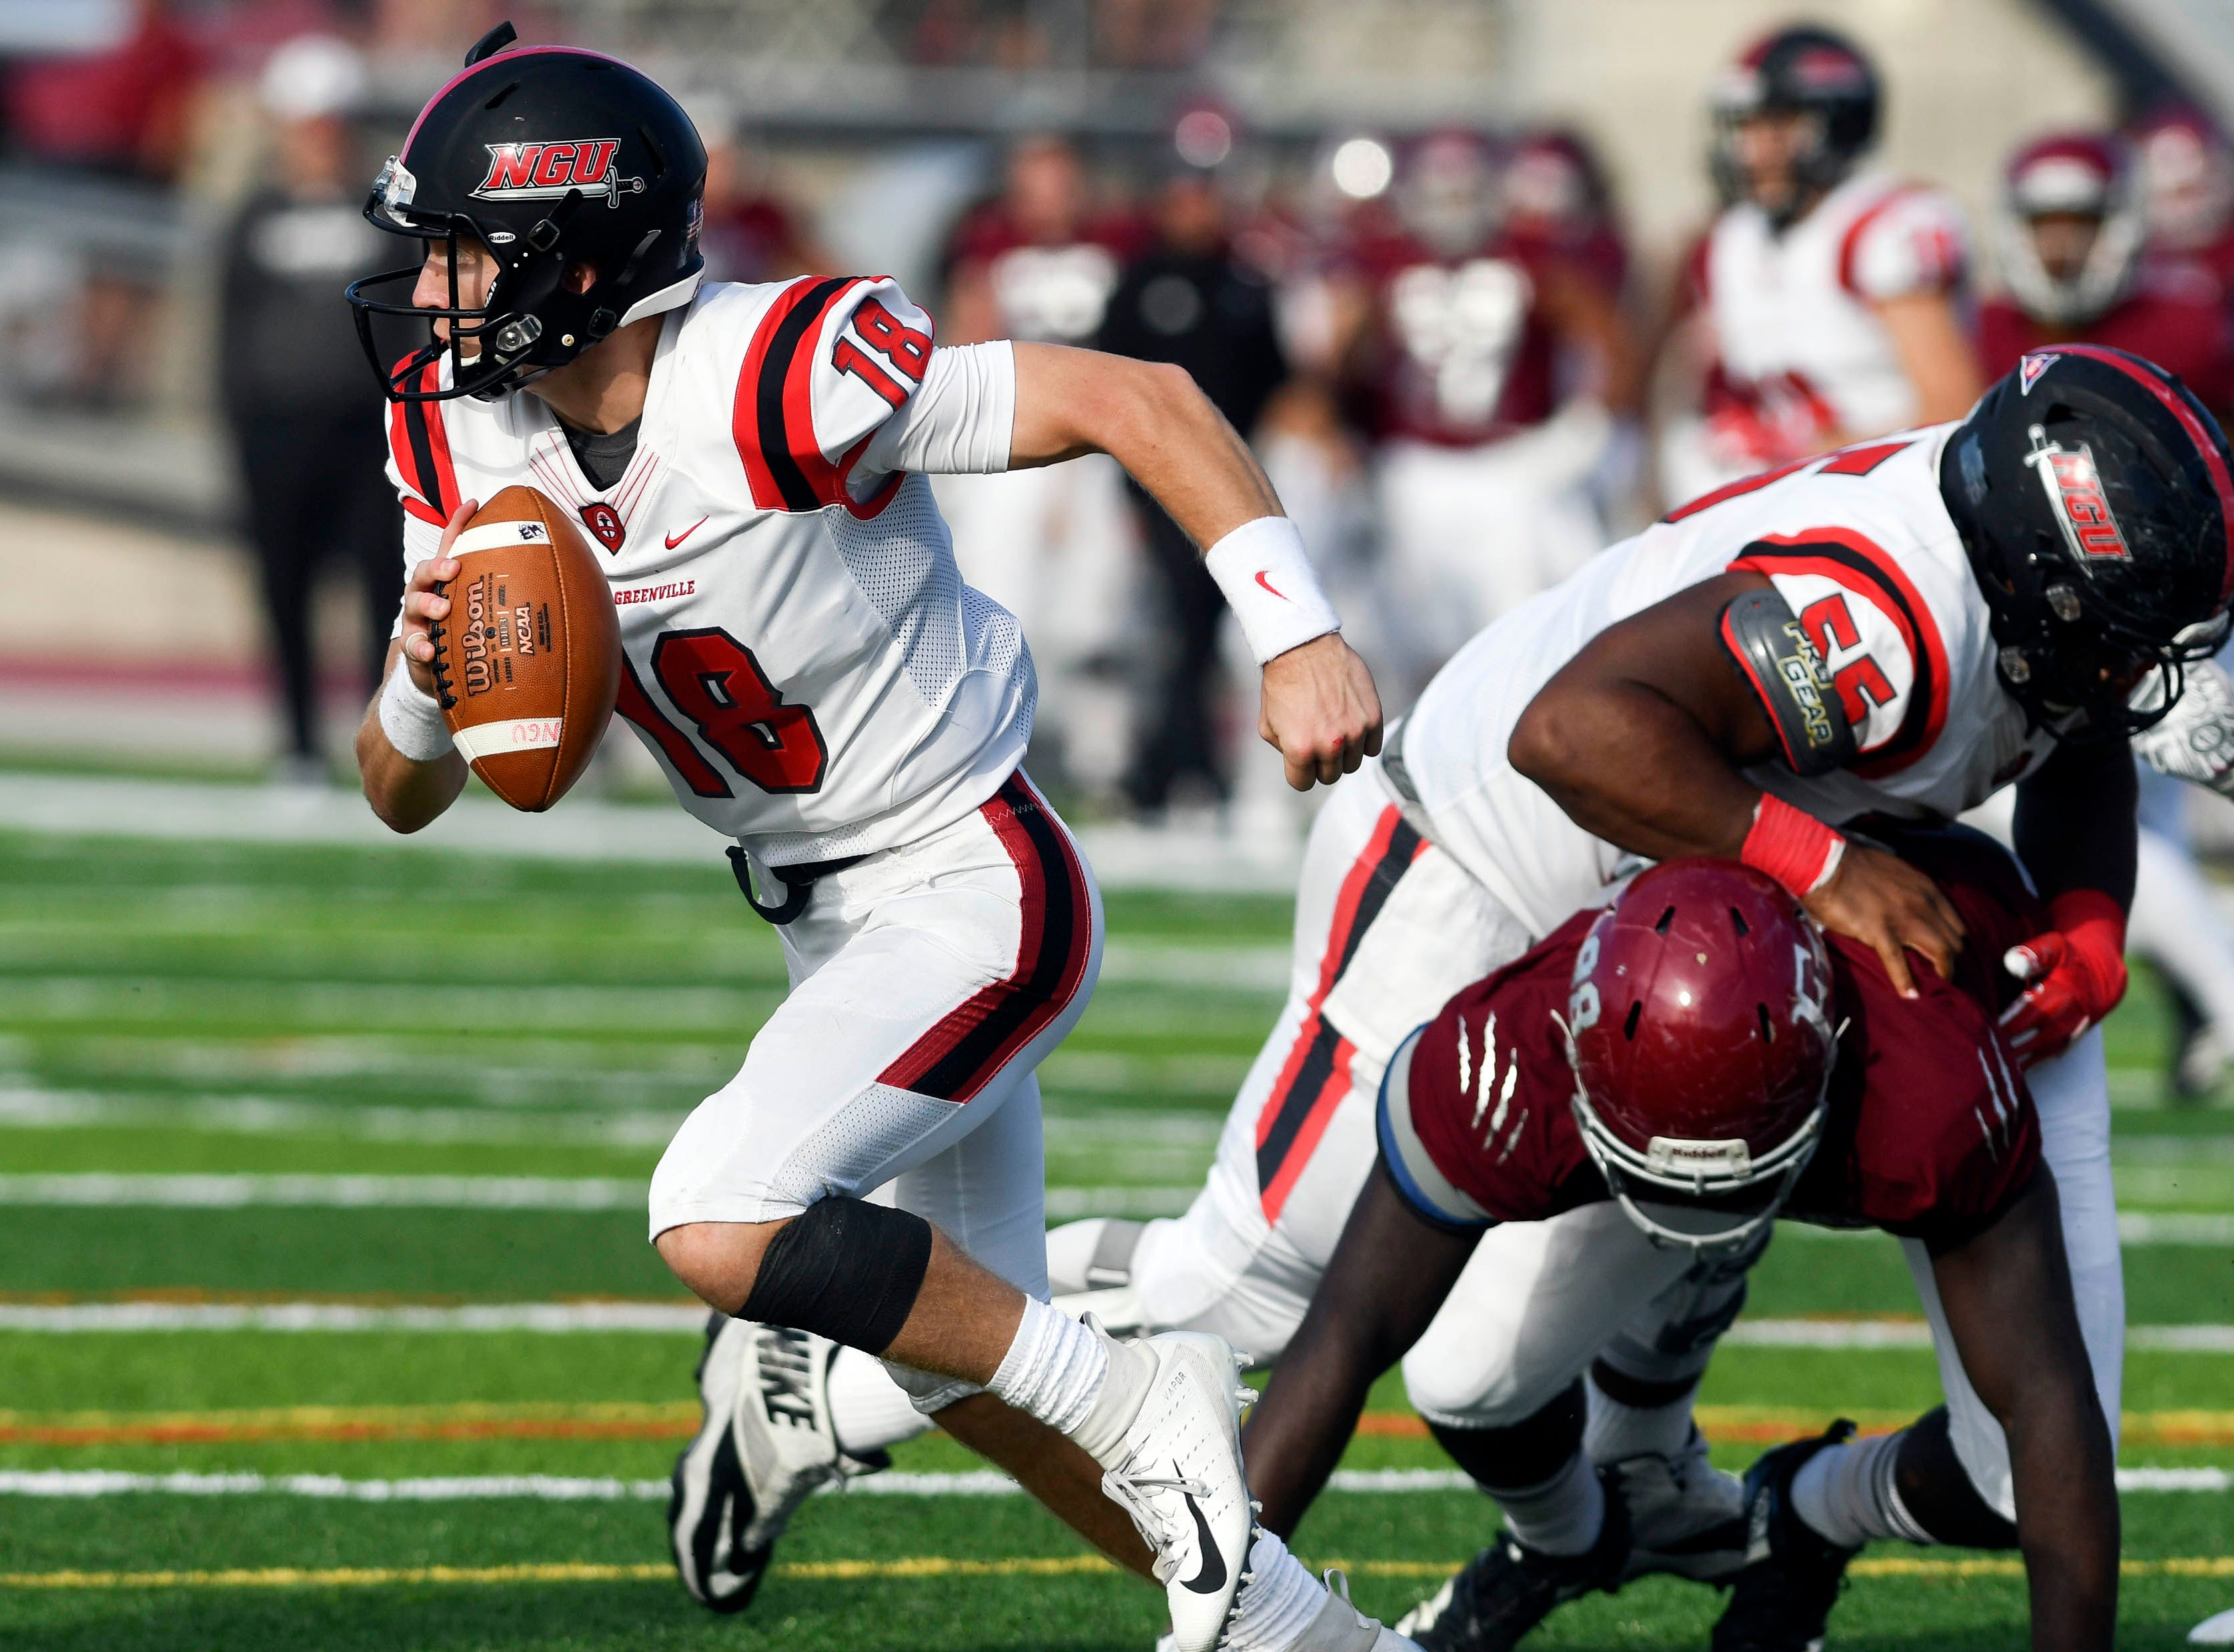 North Greenville QB Donnie Baker rolls away from the Florida Tech defensive rush during Saturday's game.